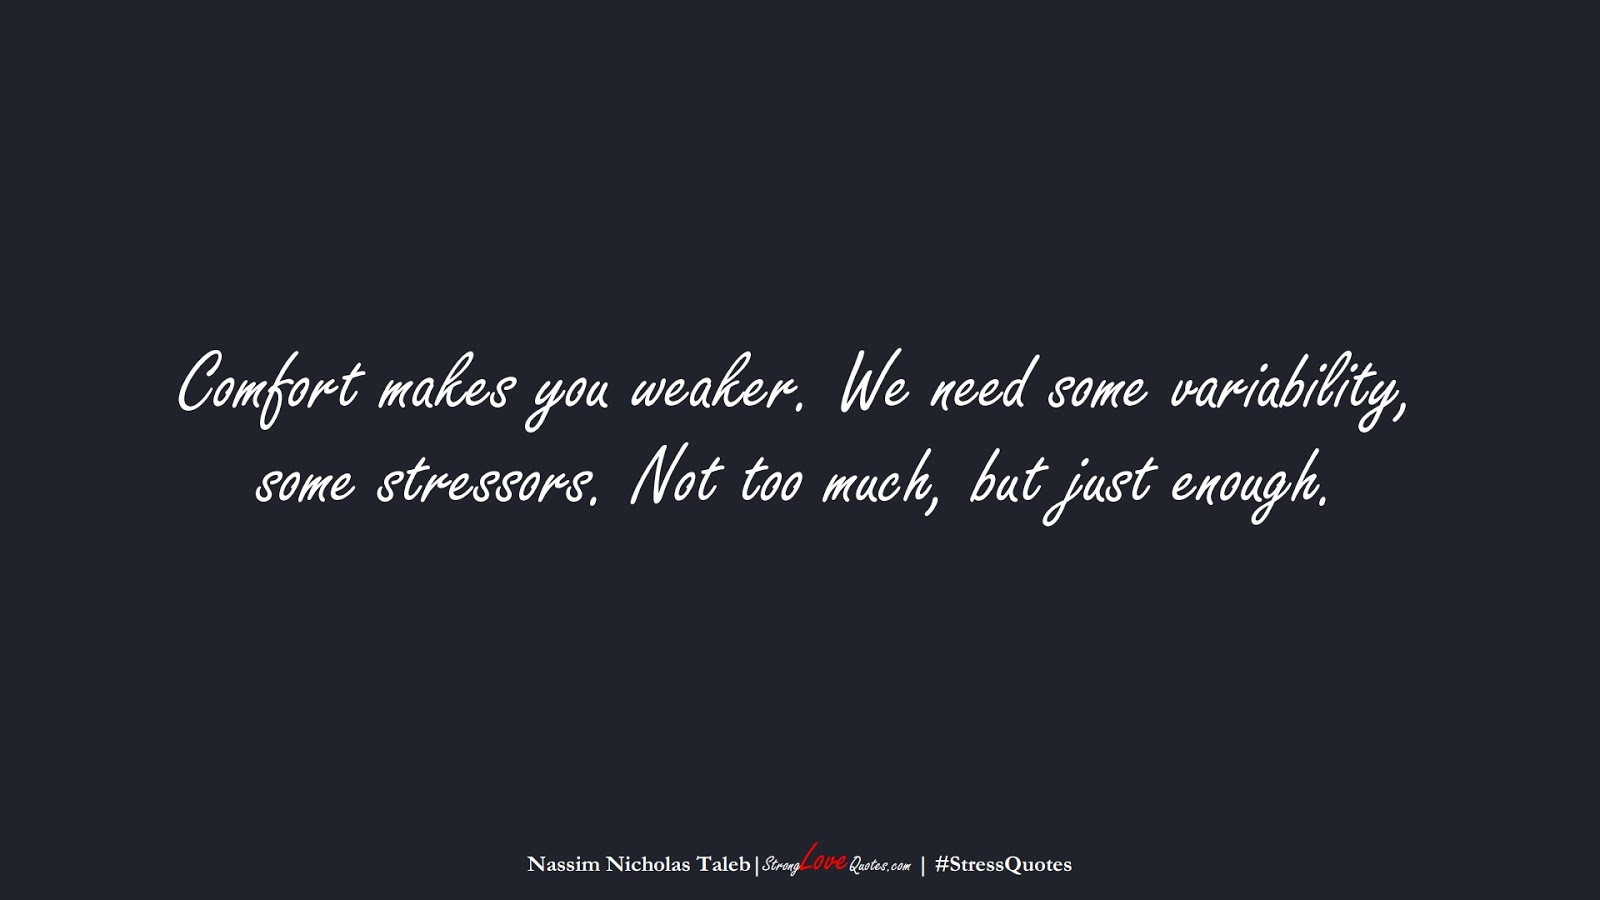 Comfort makes you weaker. We need some variability, some stressors. Not too much, but just enough. (Nassim Nicholas Taleb);  #StressQuotes